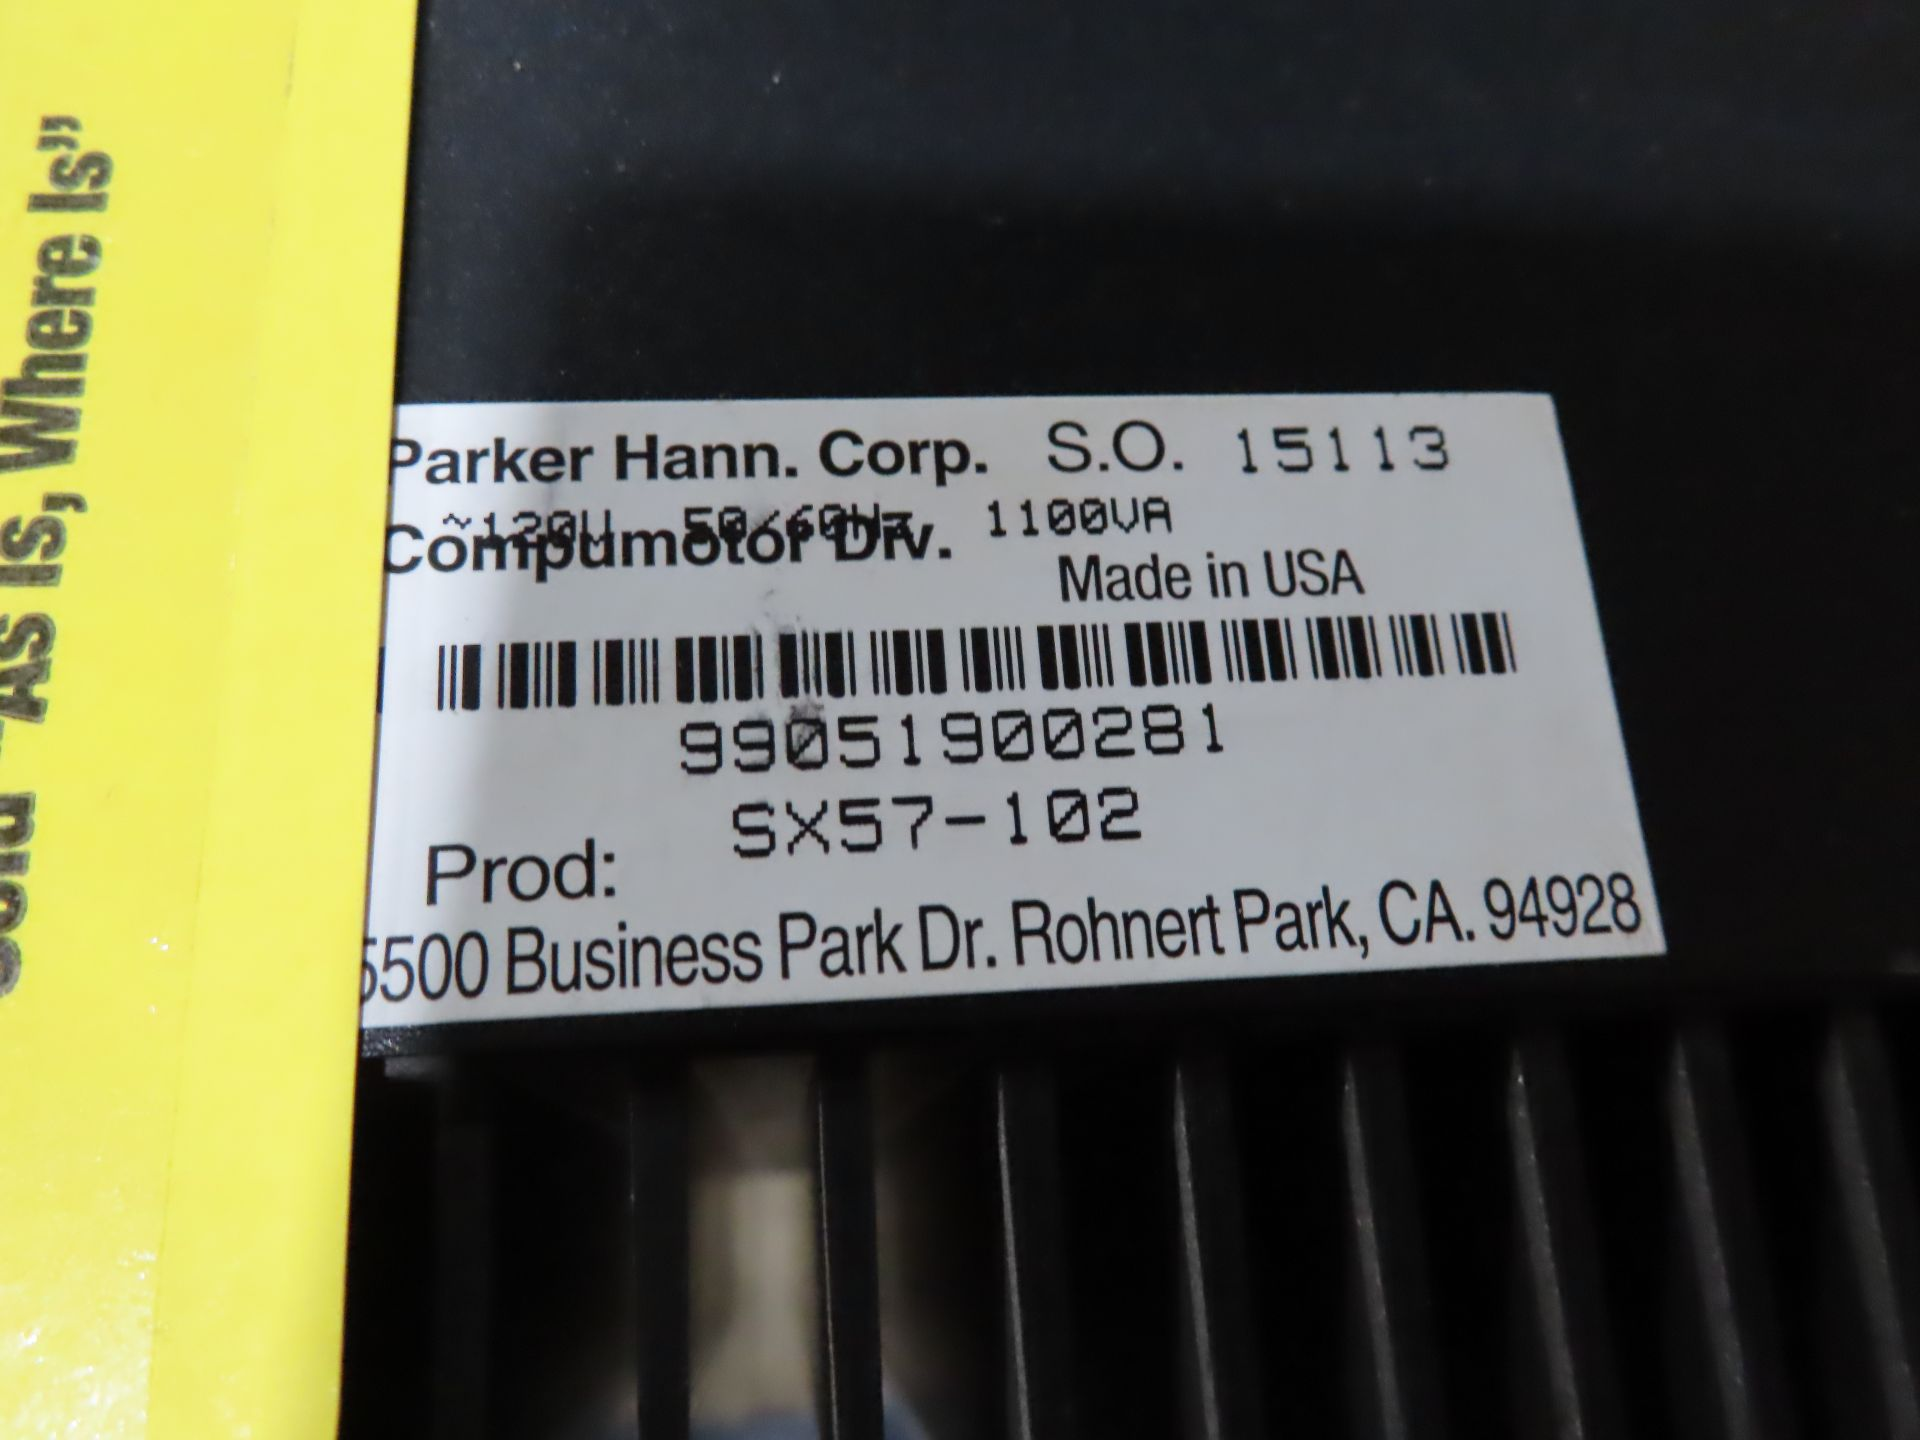 Lot 113 - Parker Compumotor model SX57-102, as always, with Brolyn LLC auctions, all lots can be picked up